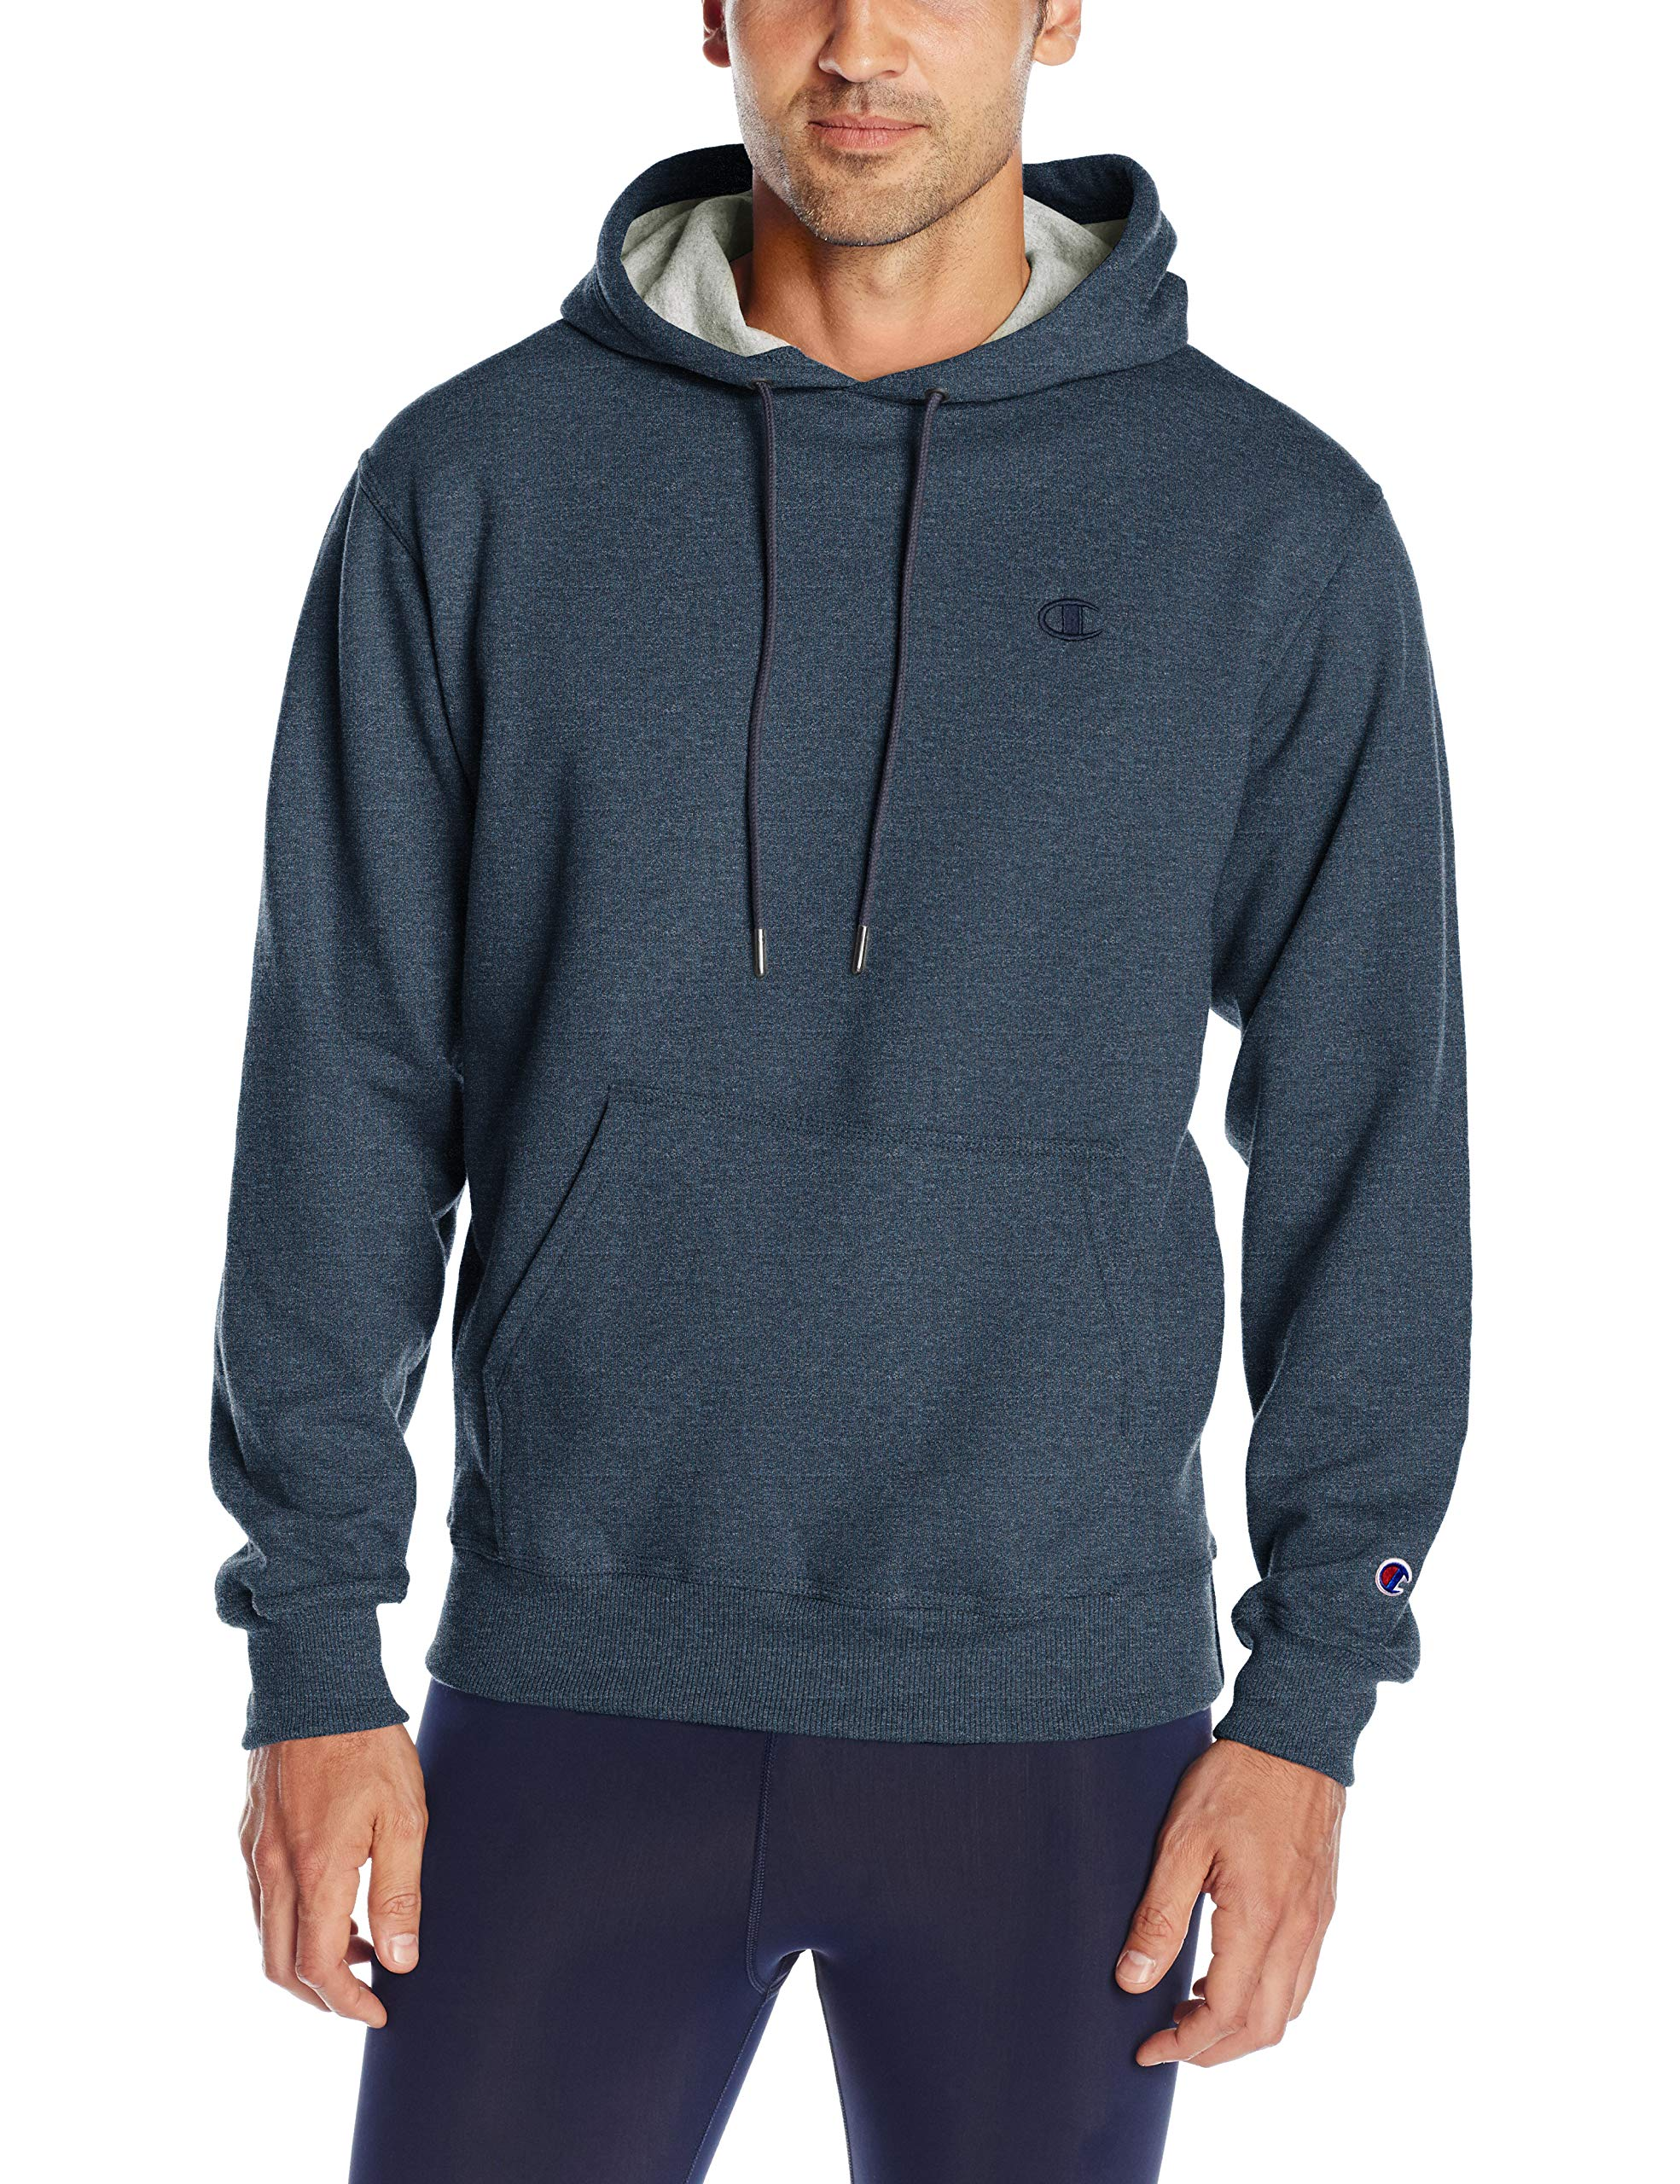 Champion Men's Powerblend Pullover Hoodie, Navy Heather, Large by Champion